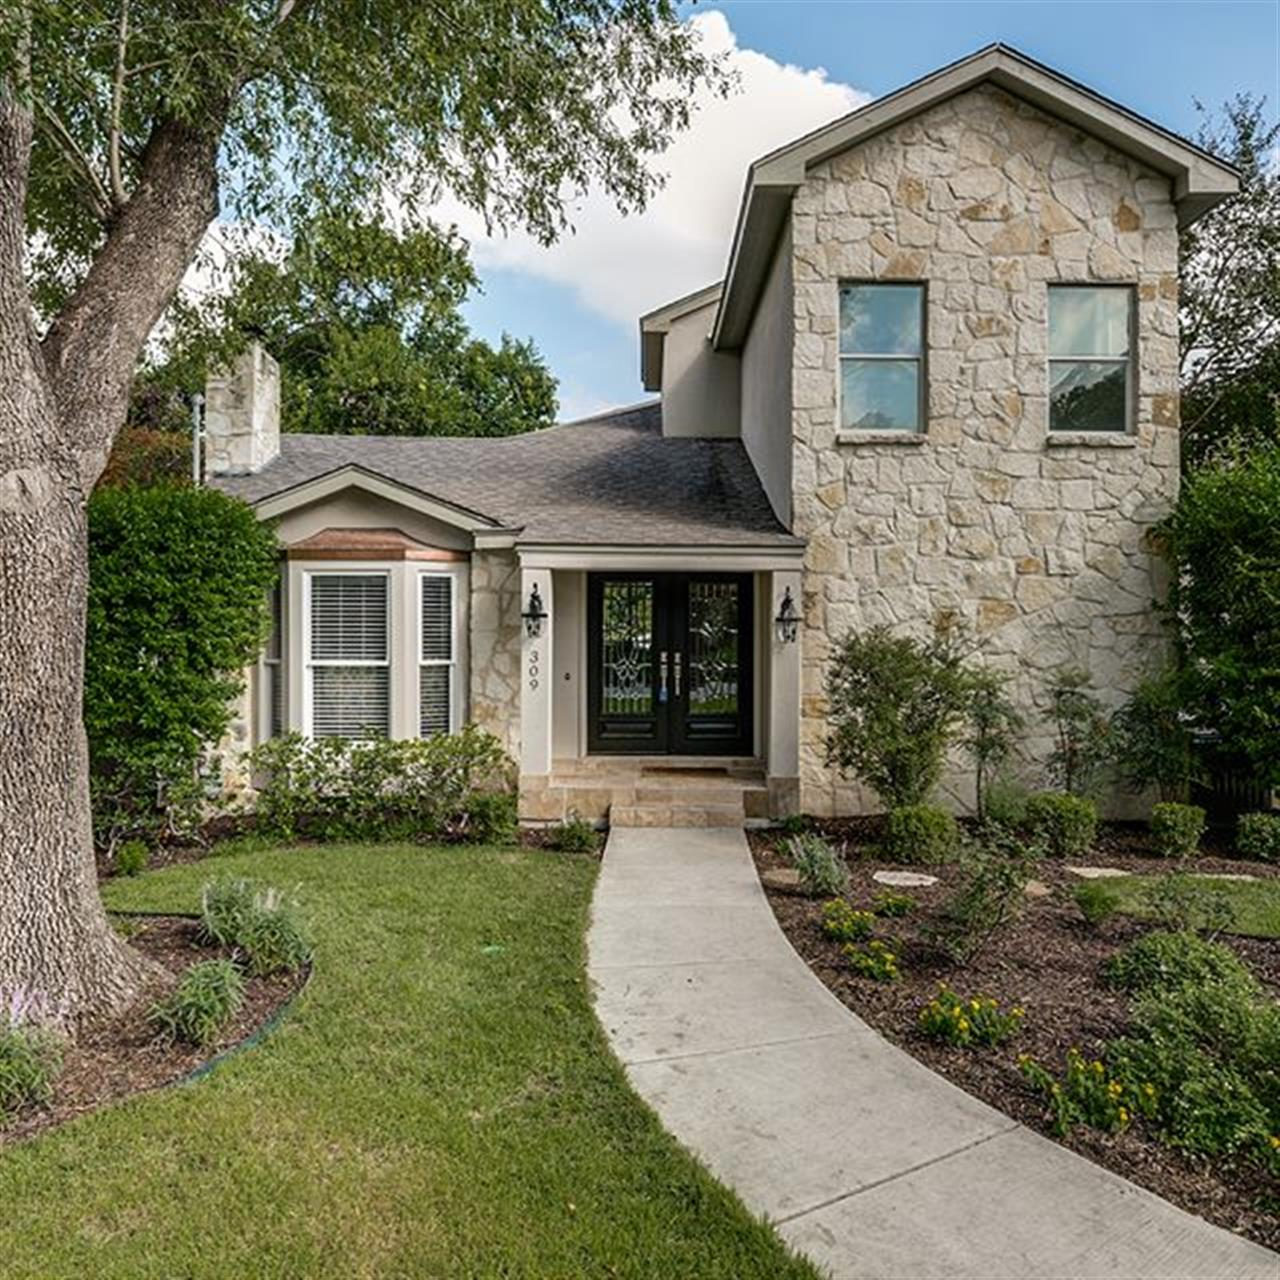 Luxury of The Day: 309 Corona Ave., listed @kristinkellum_realtor. Located in the heart of the #AlamoHeights Cottage District, this updated 1930s home pairs historical charm with the convenience of modern amenities.